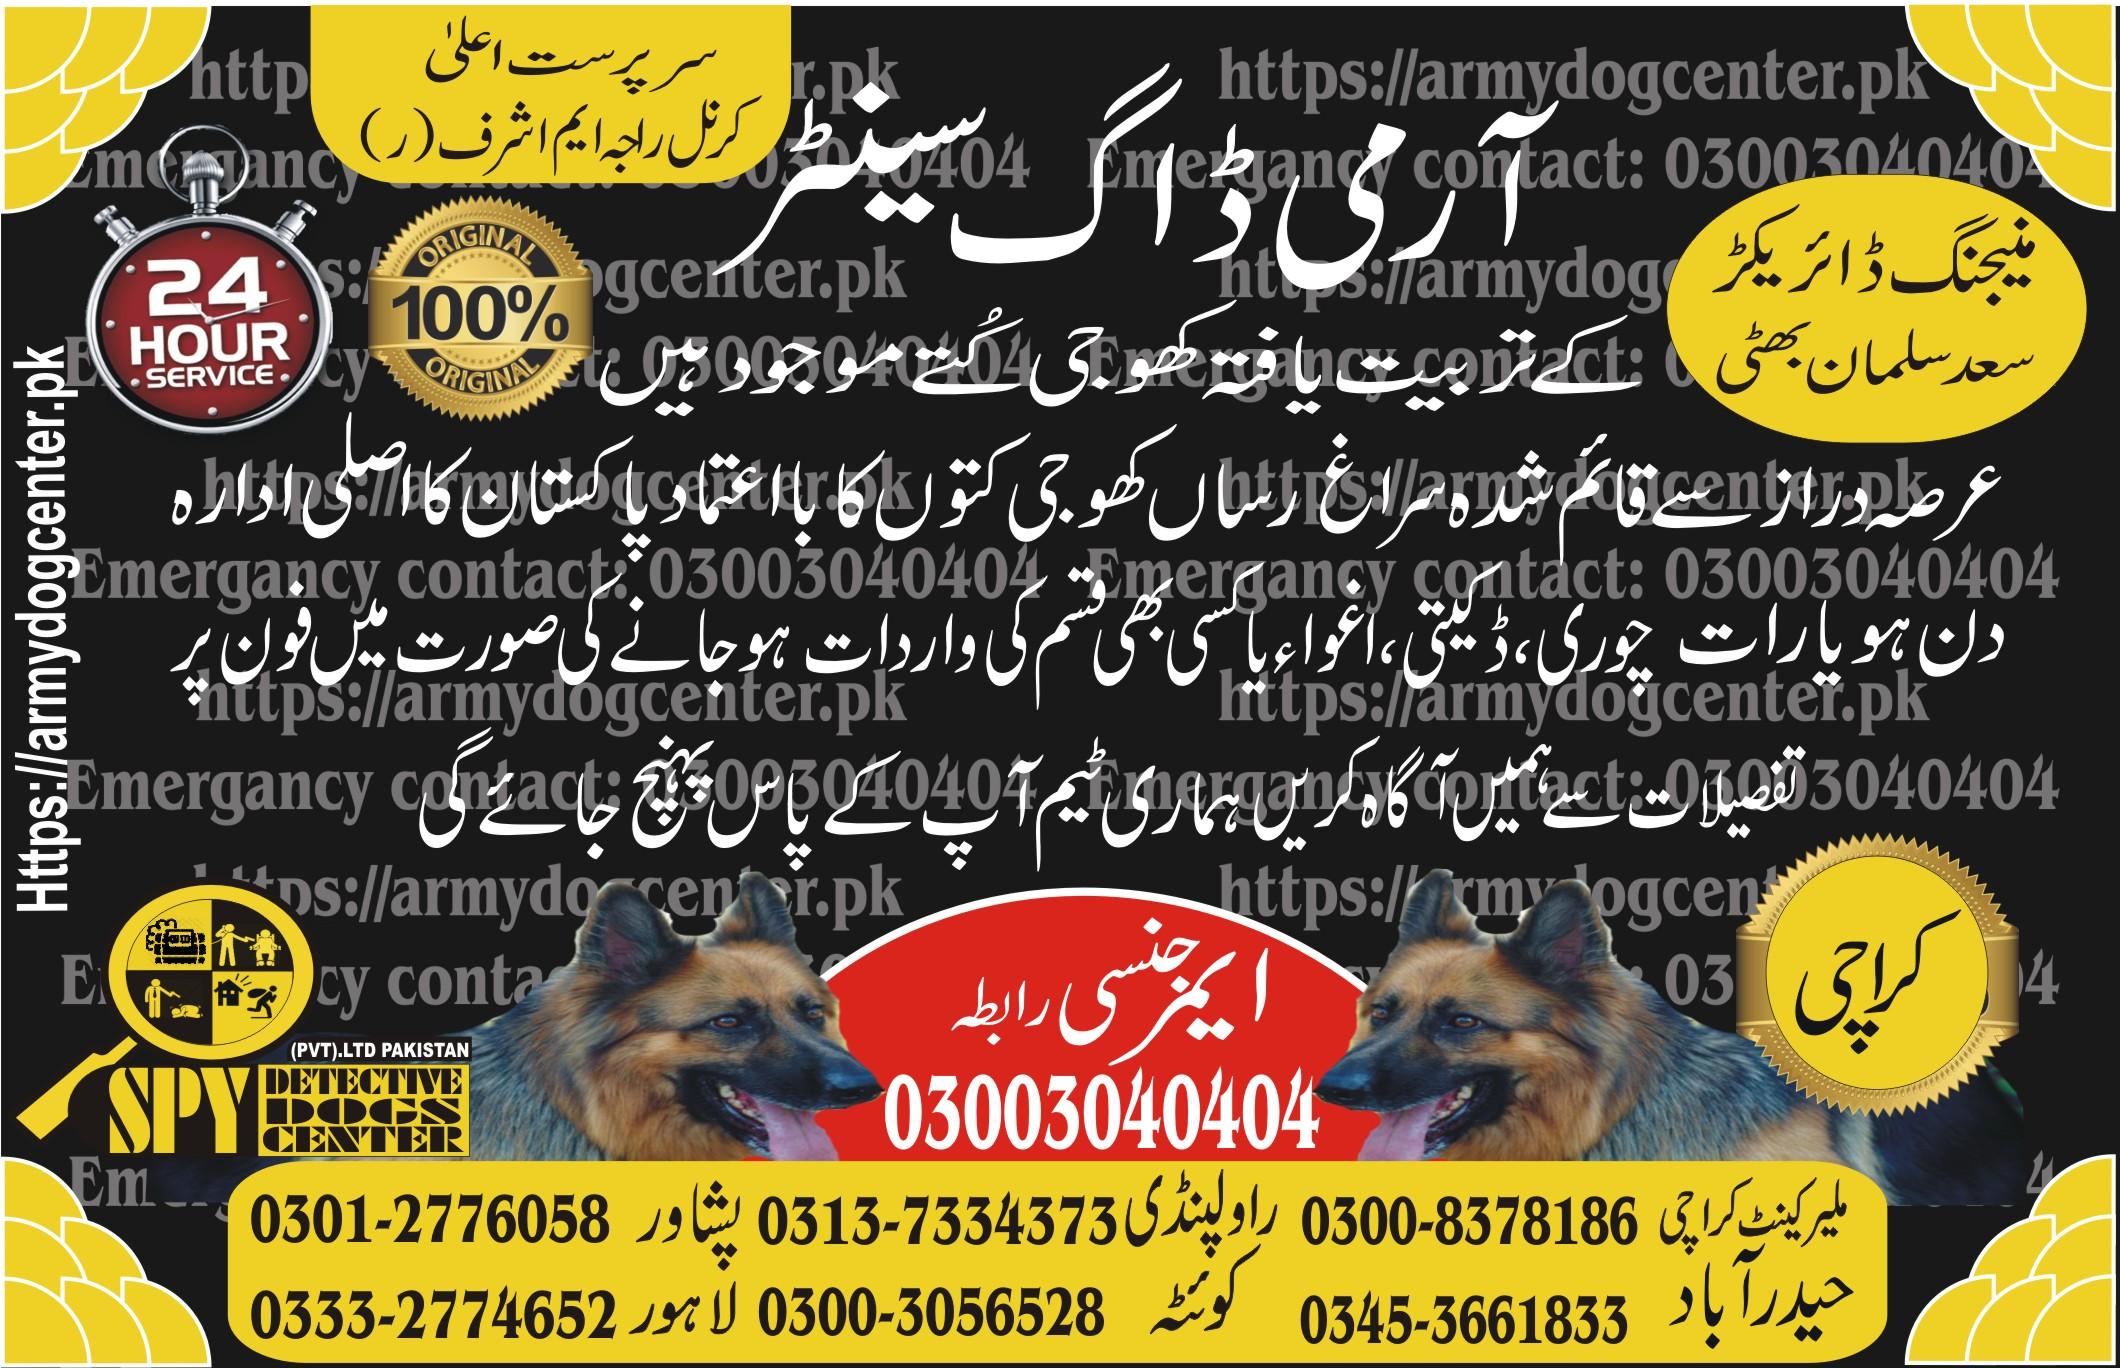 Army dog center karachi